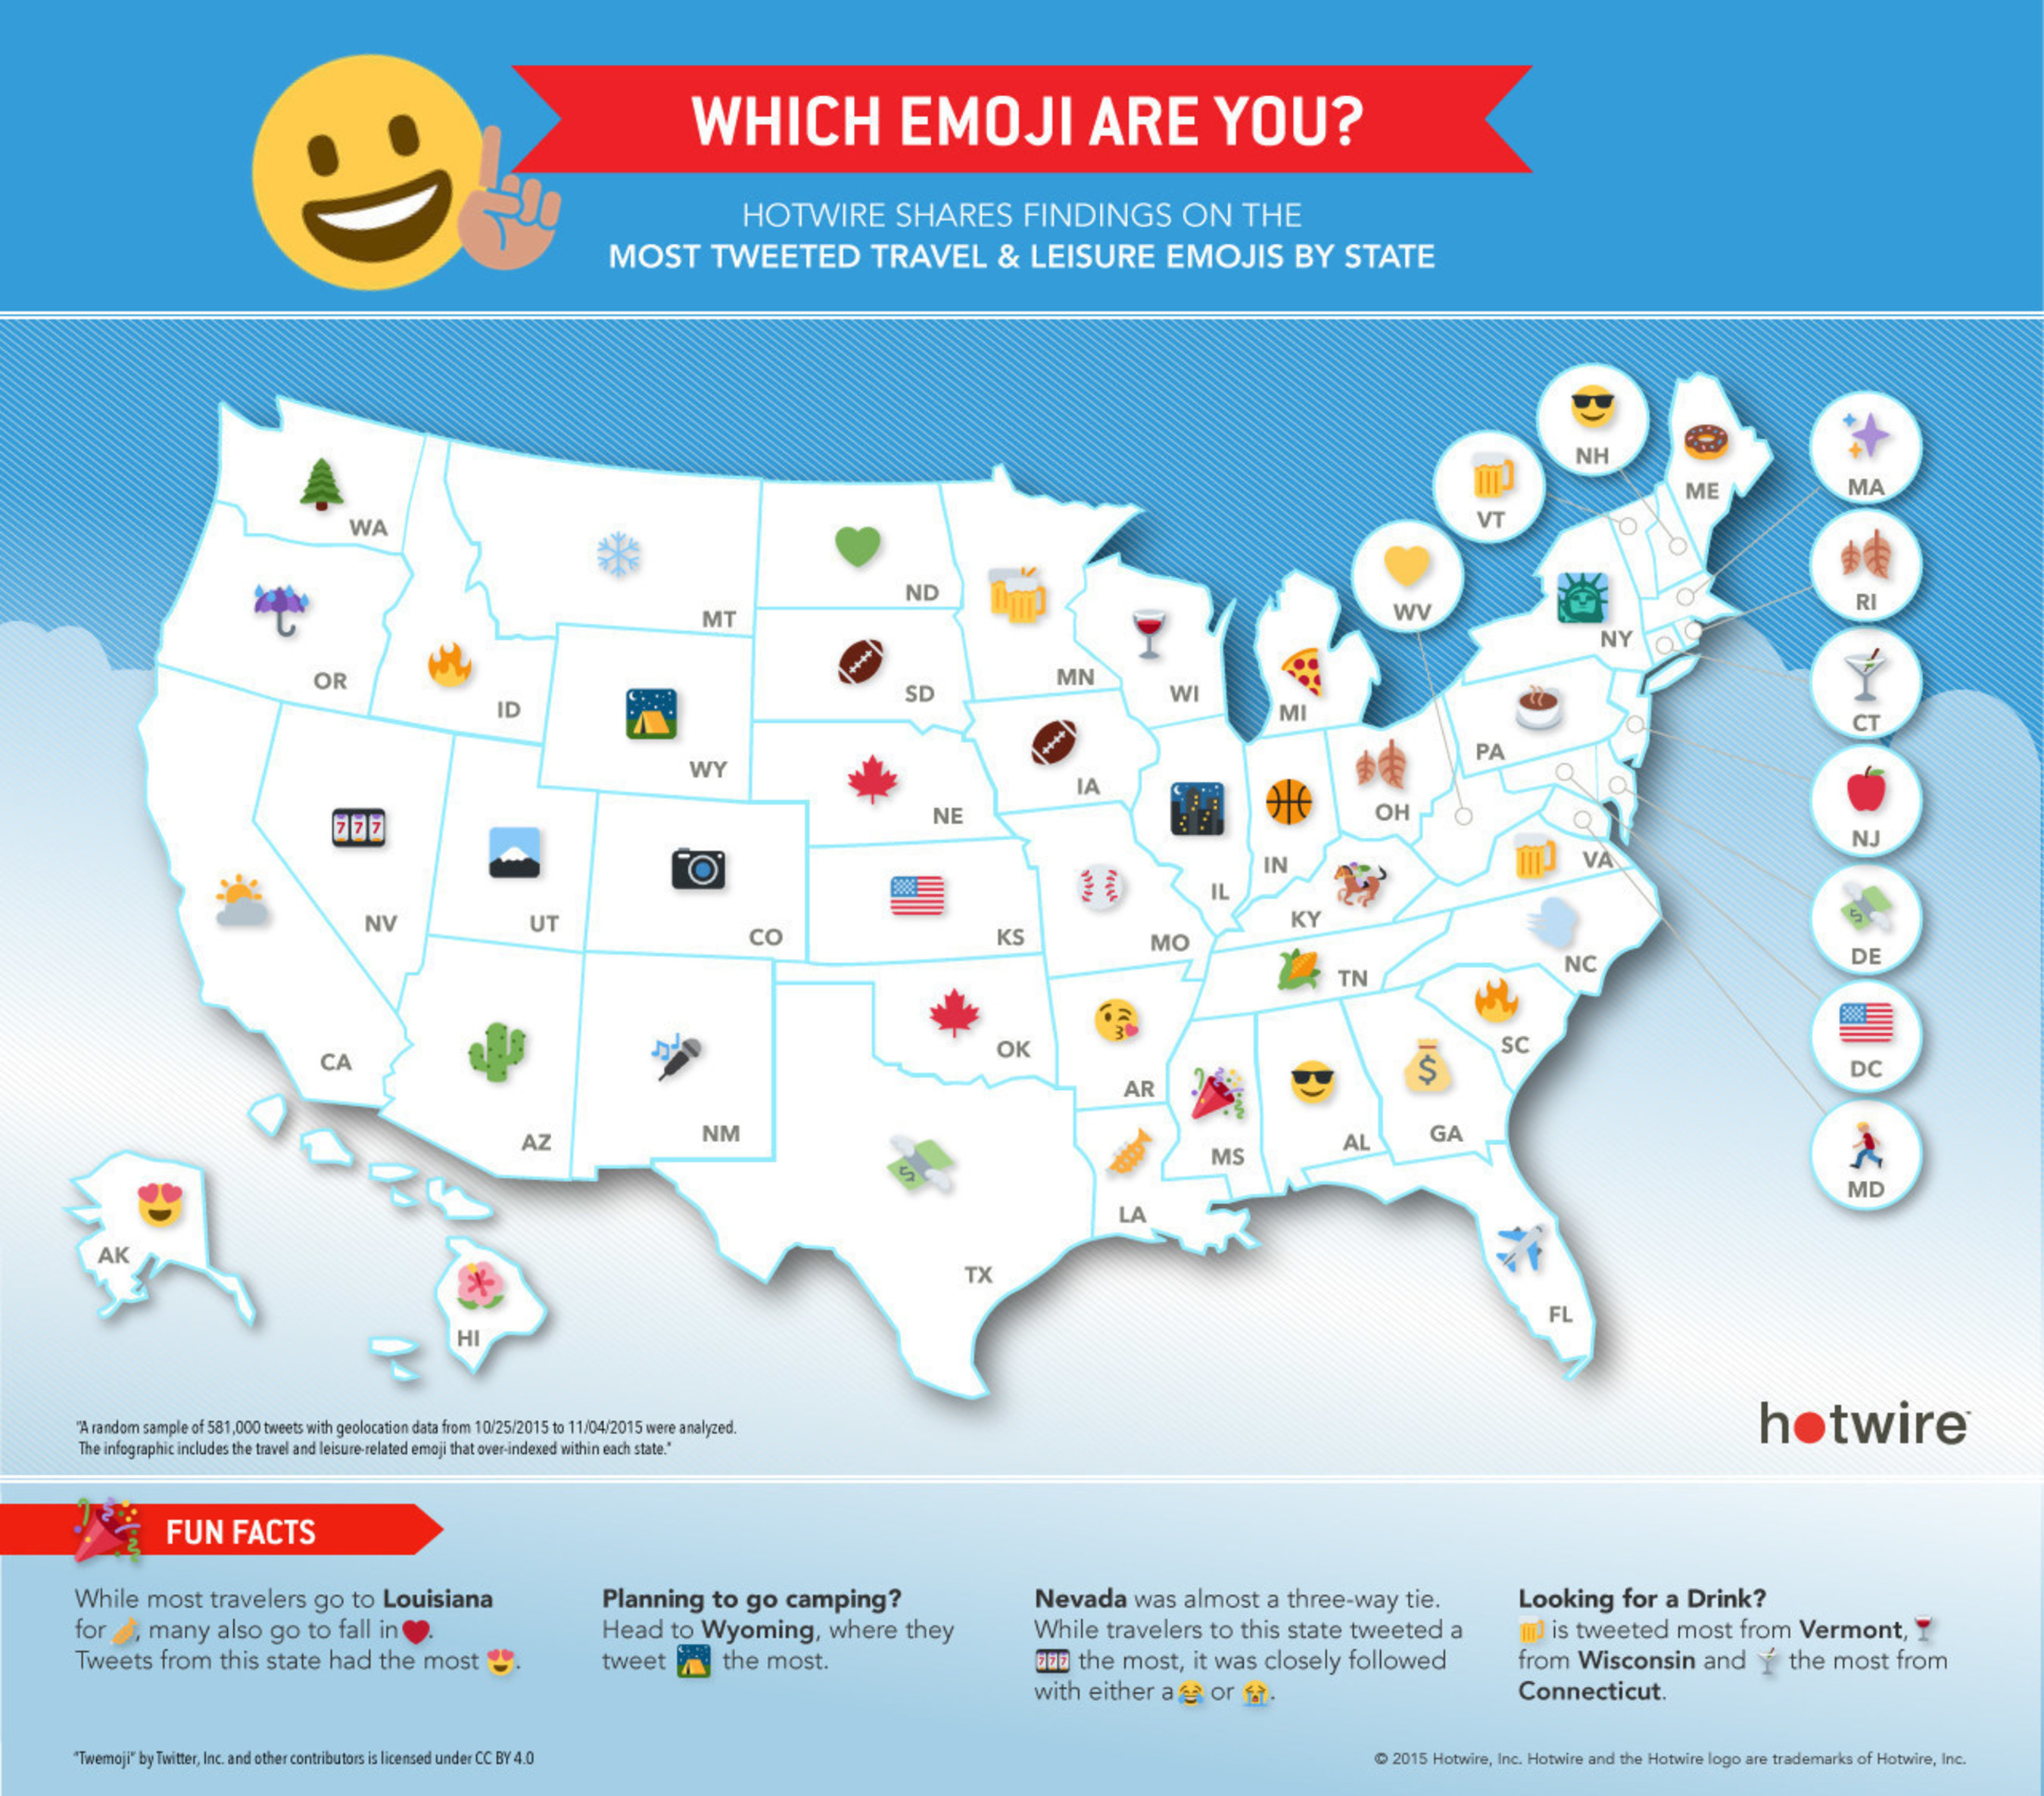 Which Emoji Are You? Hotwire Shares Findings on the Most Tweeted Travel & Leisure Emojis by State